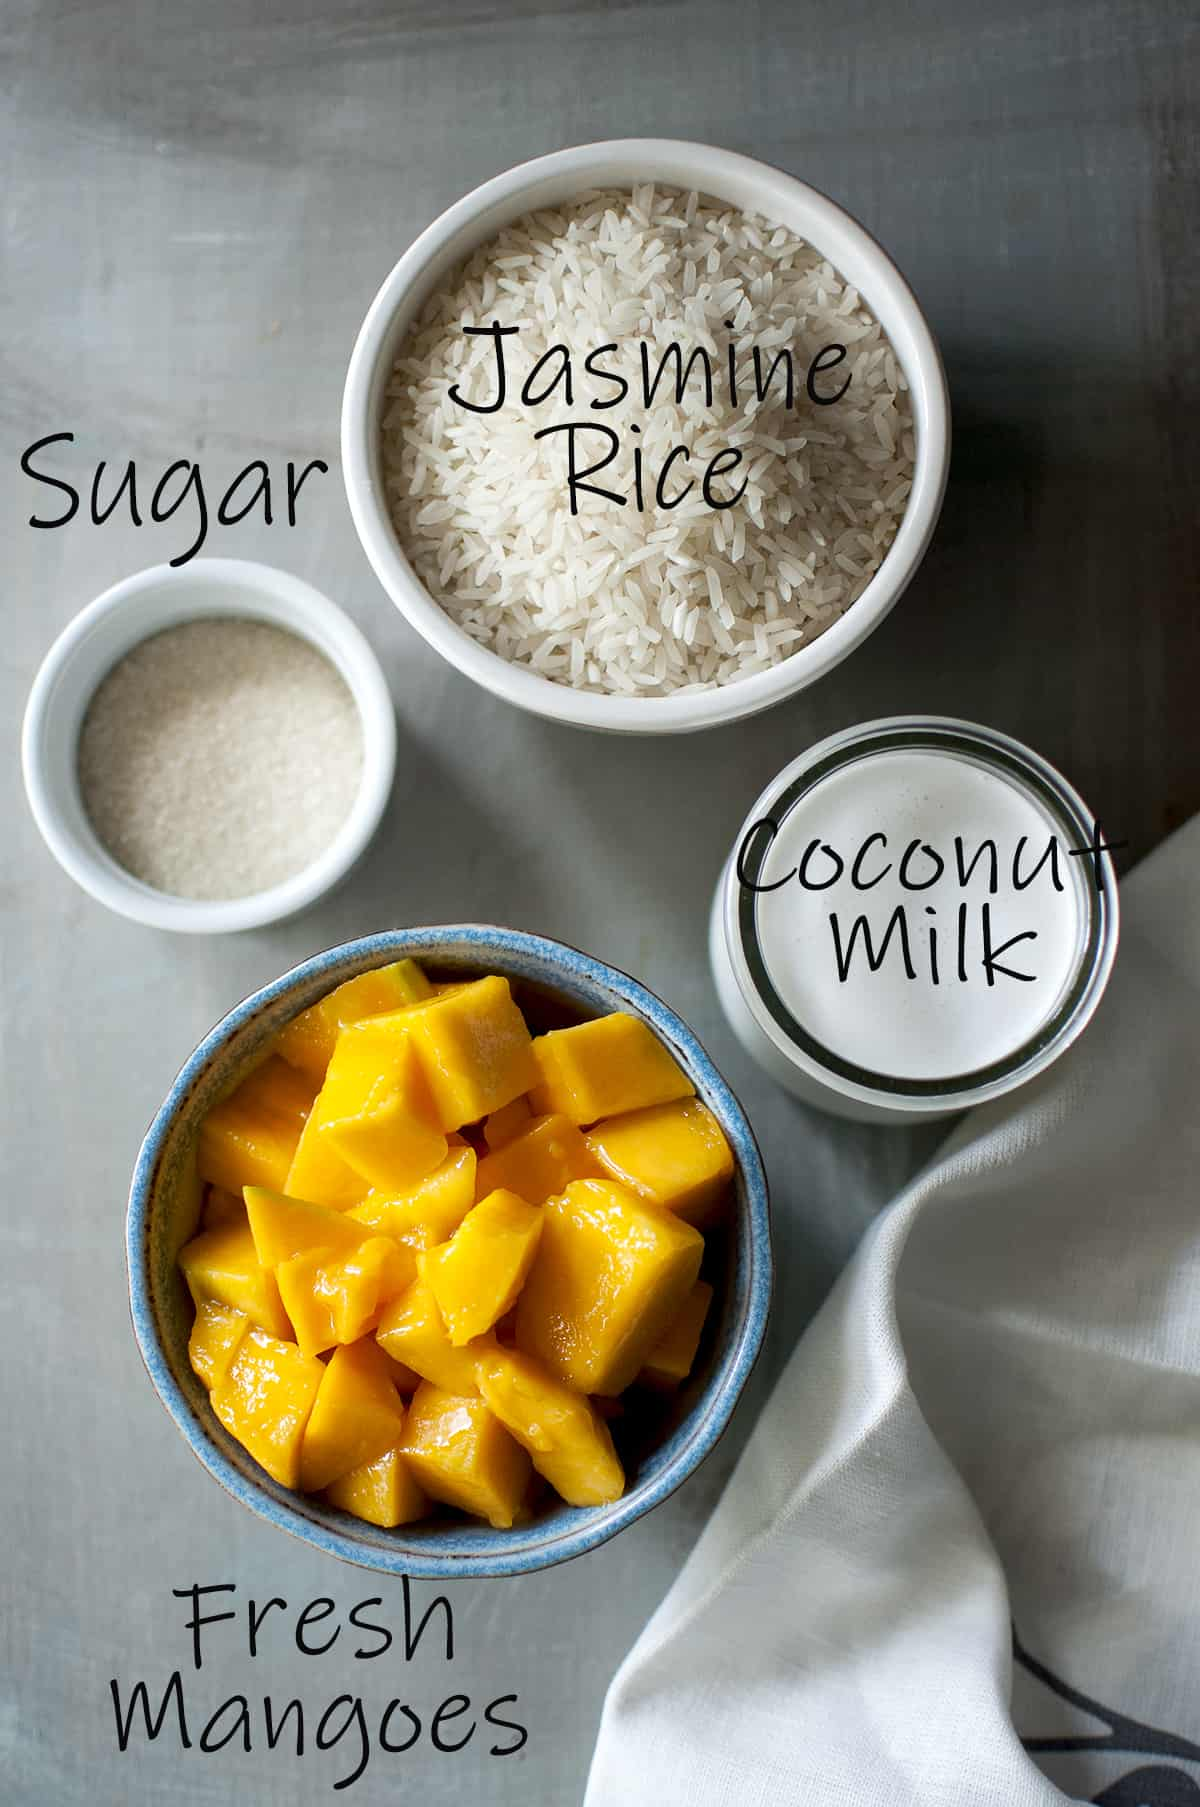 Ingredients - Jasmine rice, coconut milk, fresh mango and sugar